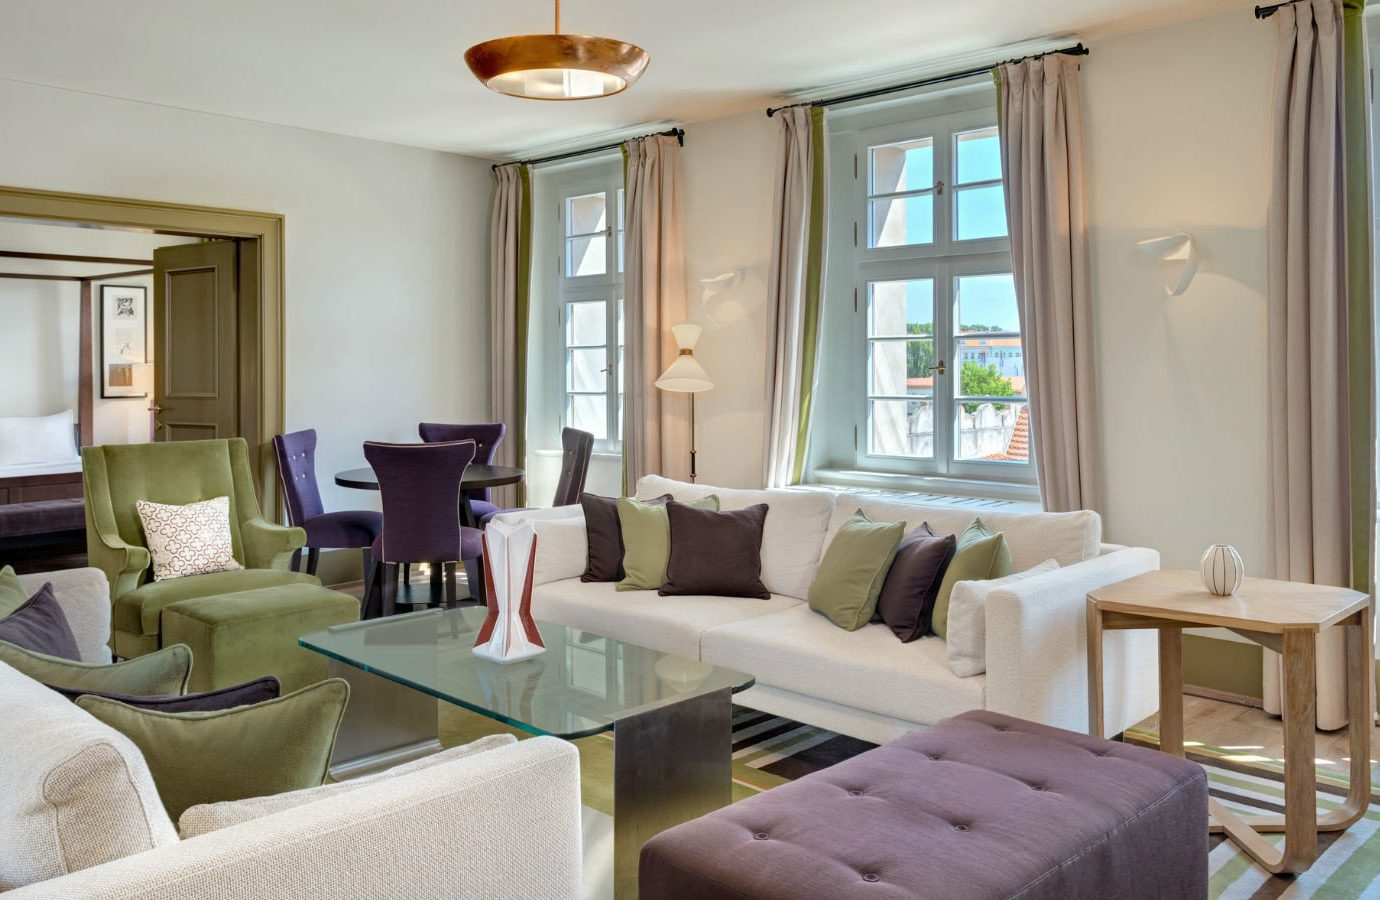 europe Hotels Prague floor indoor room window Living living room sofa wall property interior design home real estate furniture Suite ceiling apartment estate house table interior designer penthouse apartment Modern area decorated several